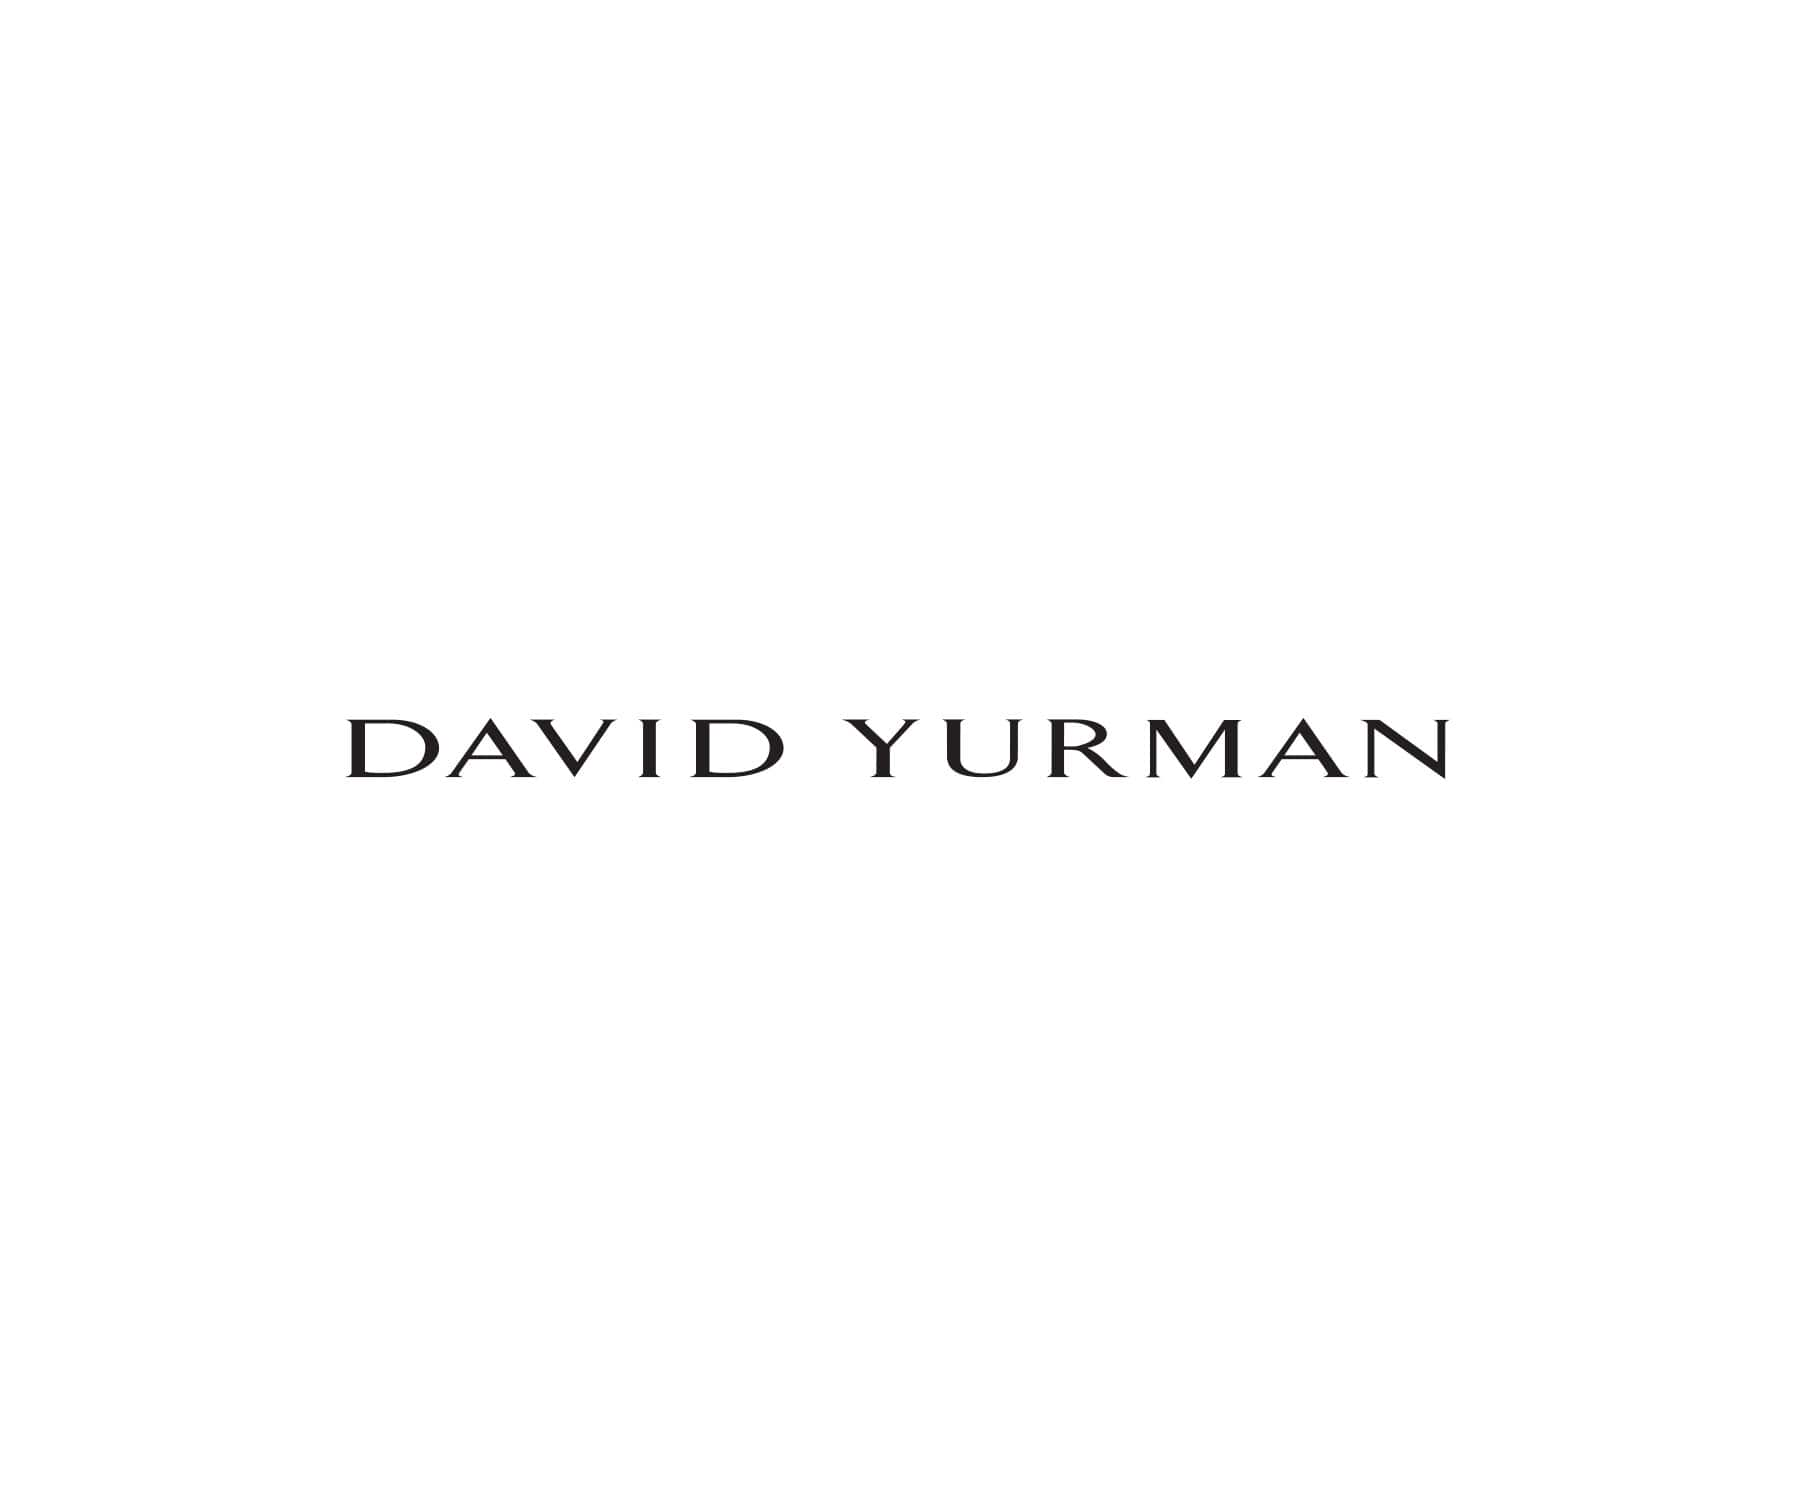 David Yurman Cable Collectibles, Helena, Supernova, Continuance with cultured pearl and The Crossover Collection pendant necklaces, in sterling silver or 18K gold with white diamonds, hanging in a ray of light against a sandy-colored stone.